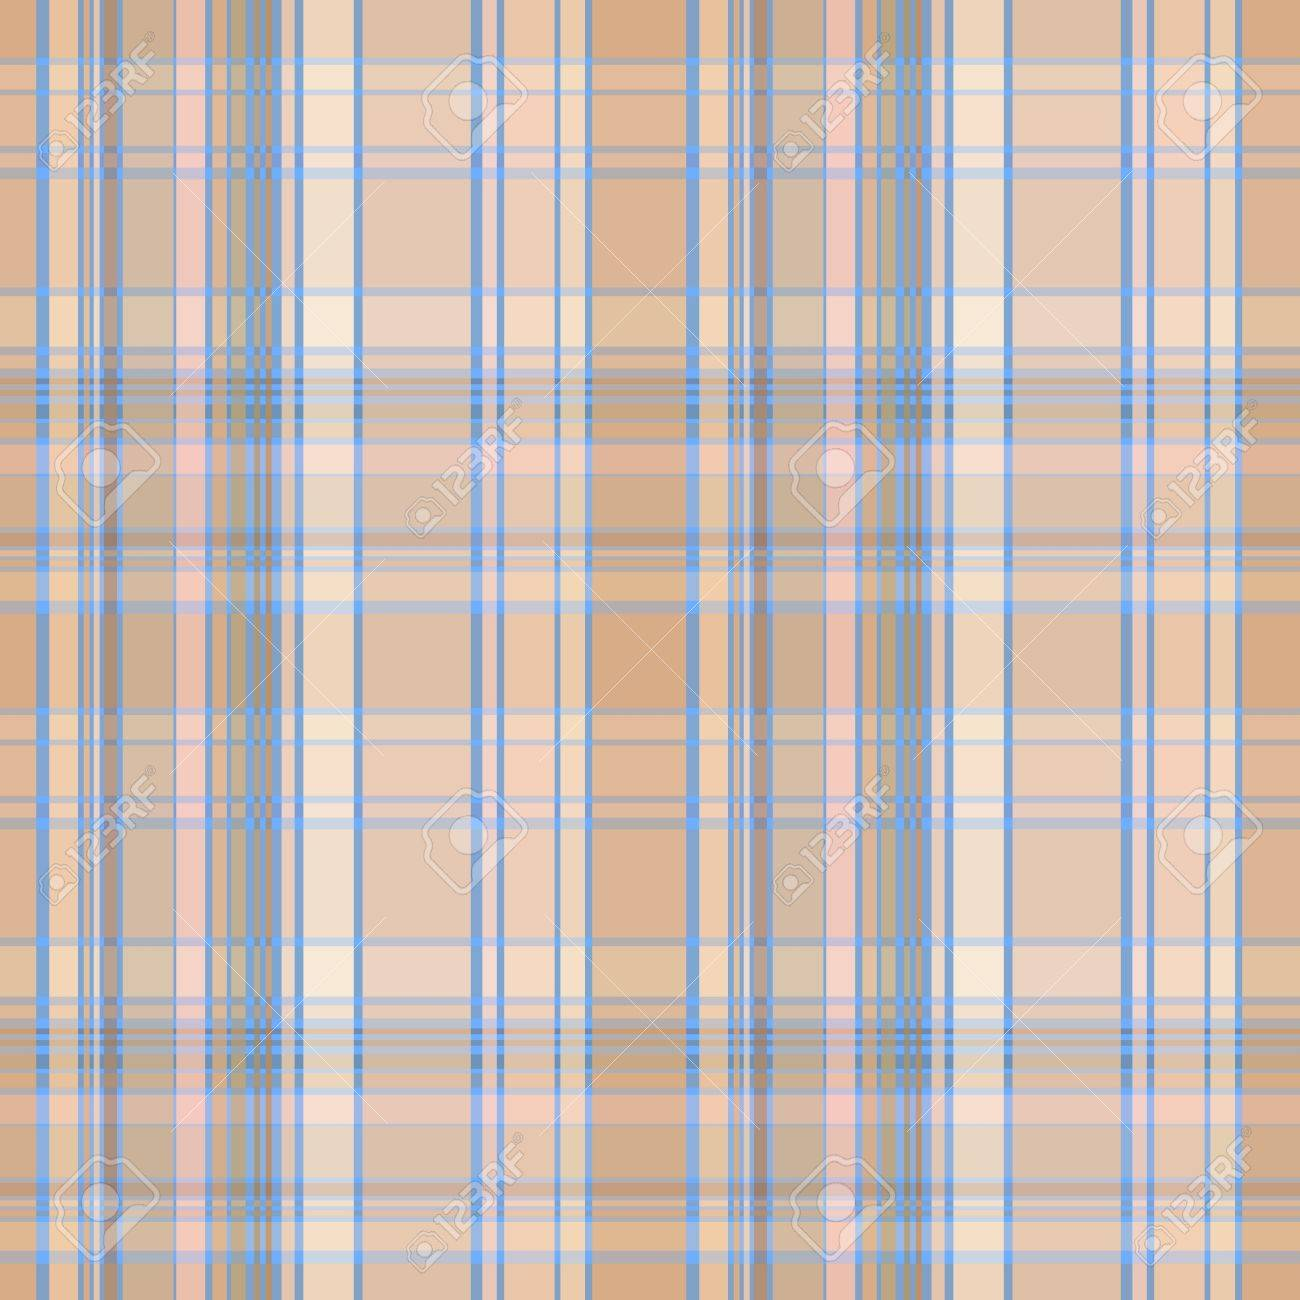 Seamless Plaid Material Pattern With Blue Lines On Brown Stock Vector    15069535